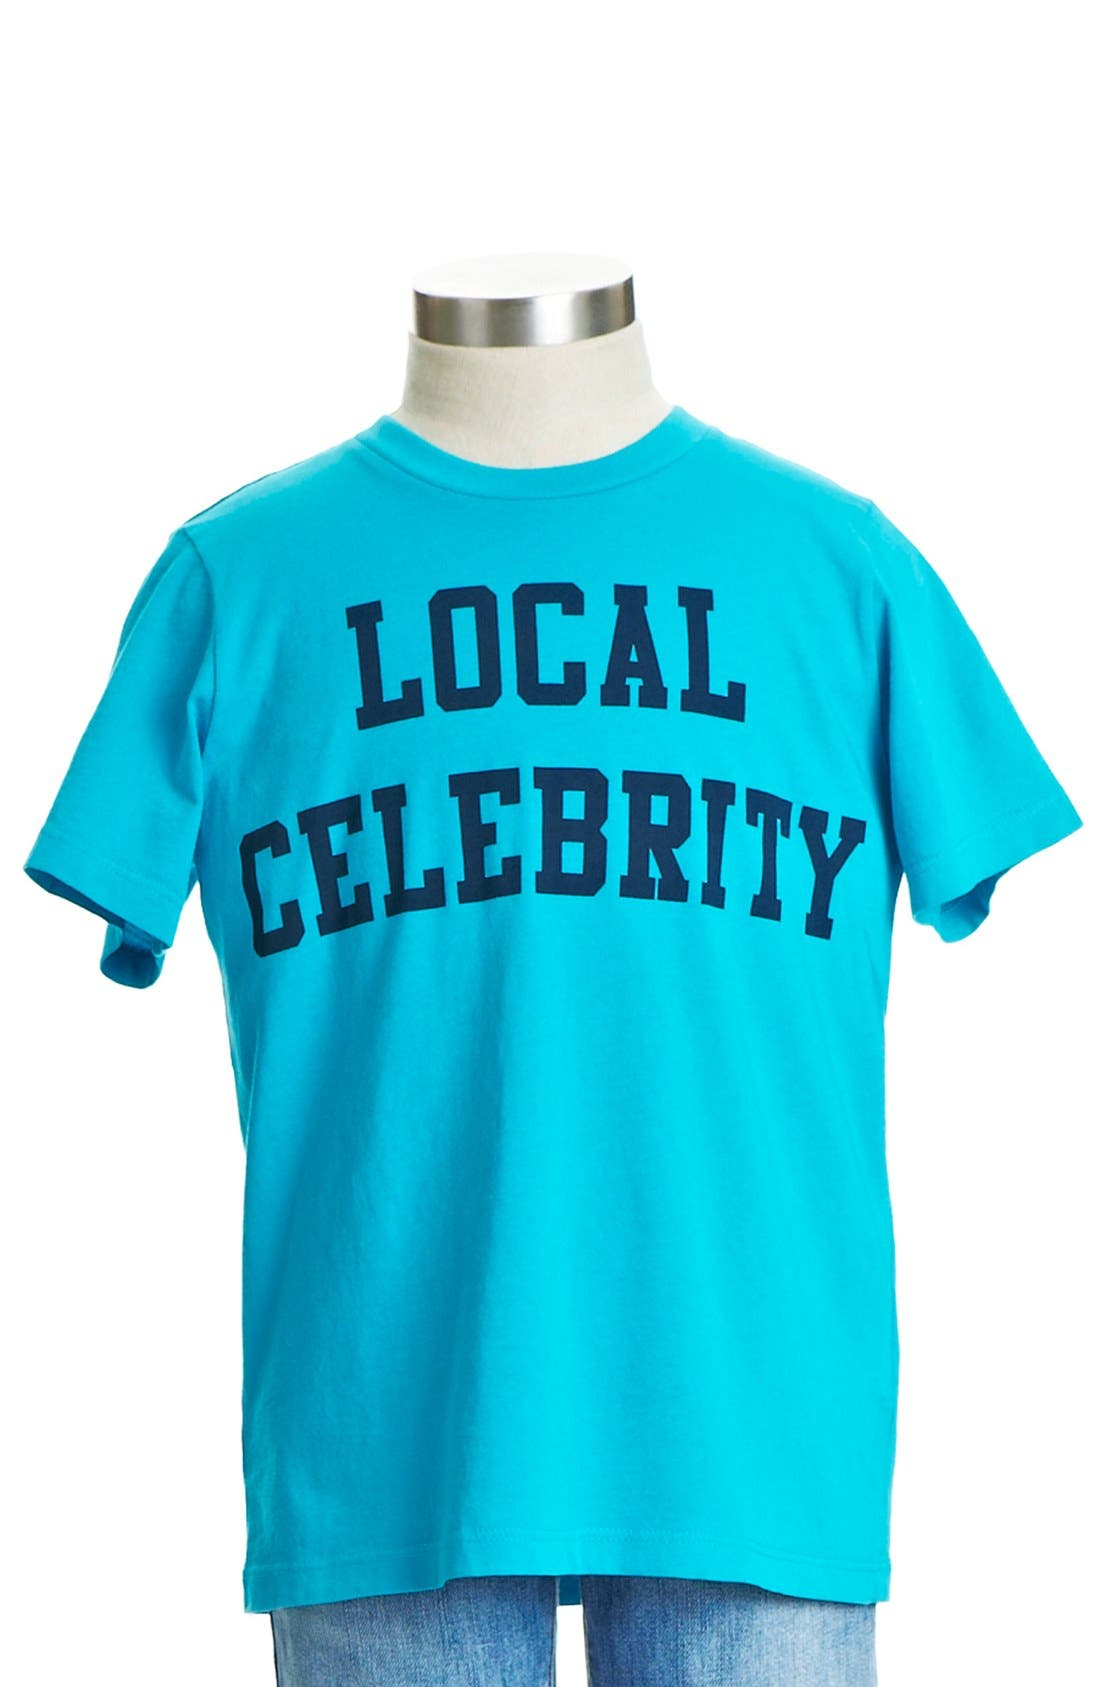 Alternate Image 1 Selected - Peek 'Local Celebrity' T-Shirt (Toddler Boys, Little Boys & Big Boys)